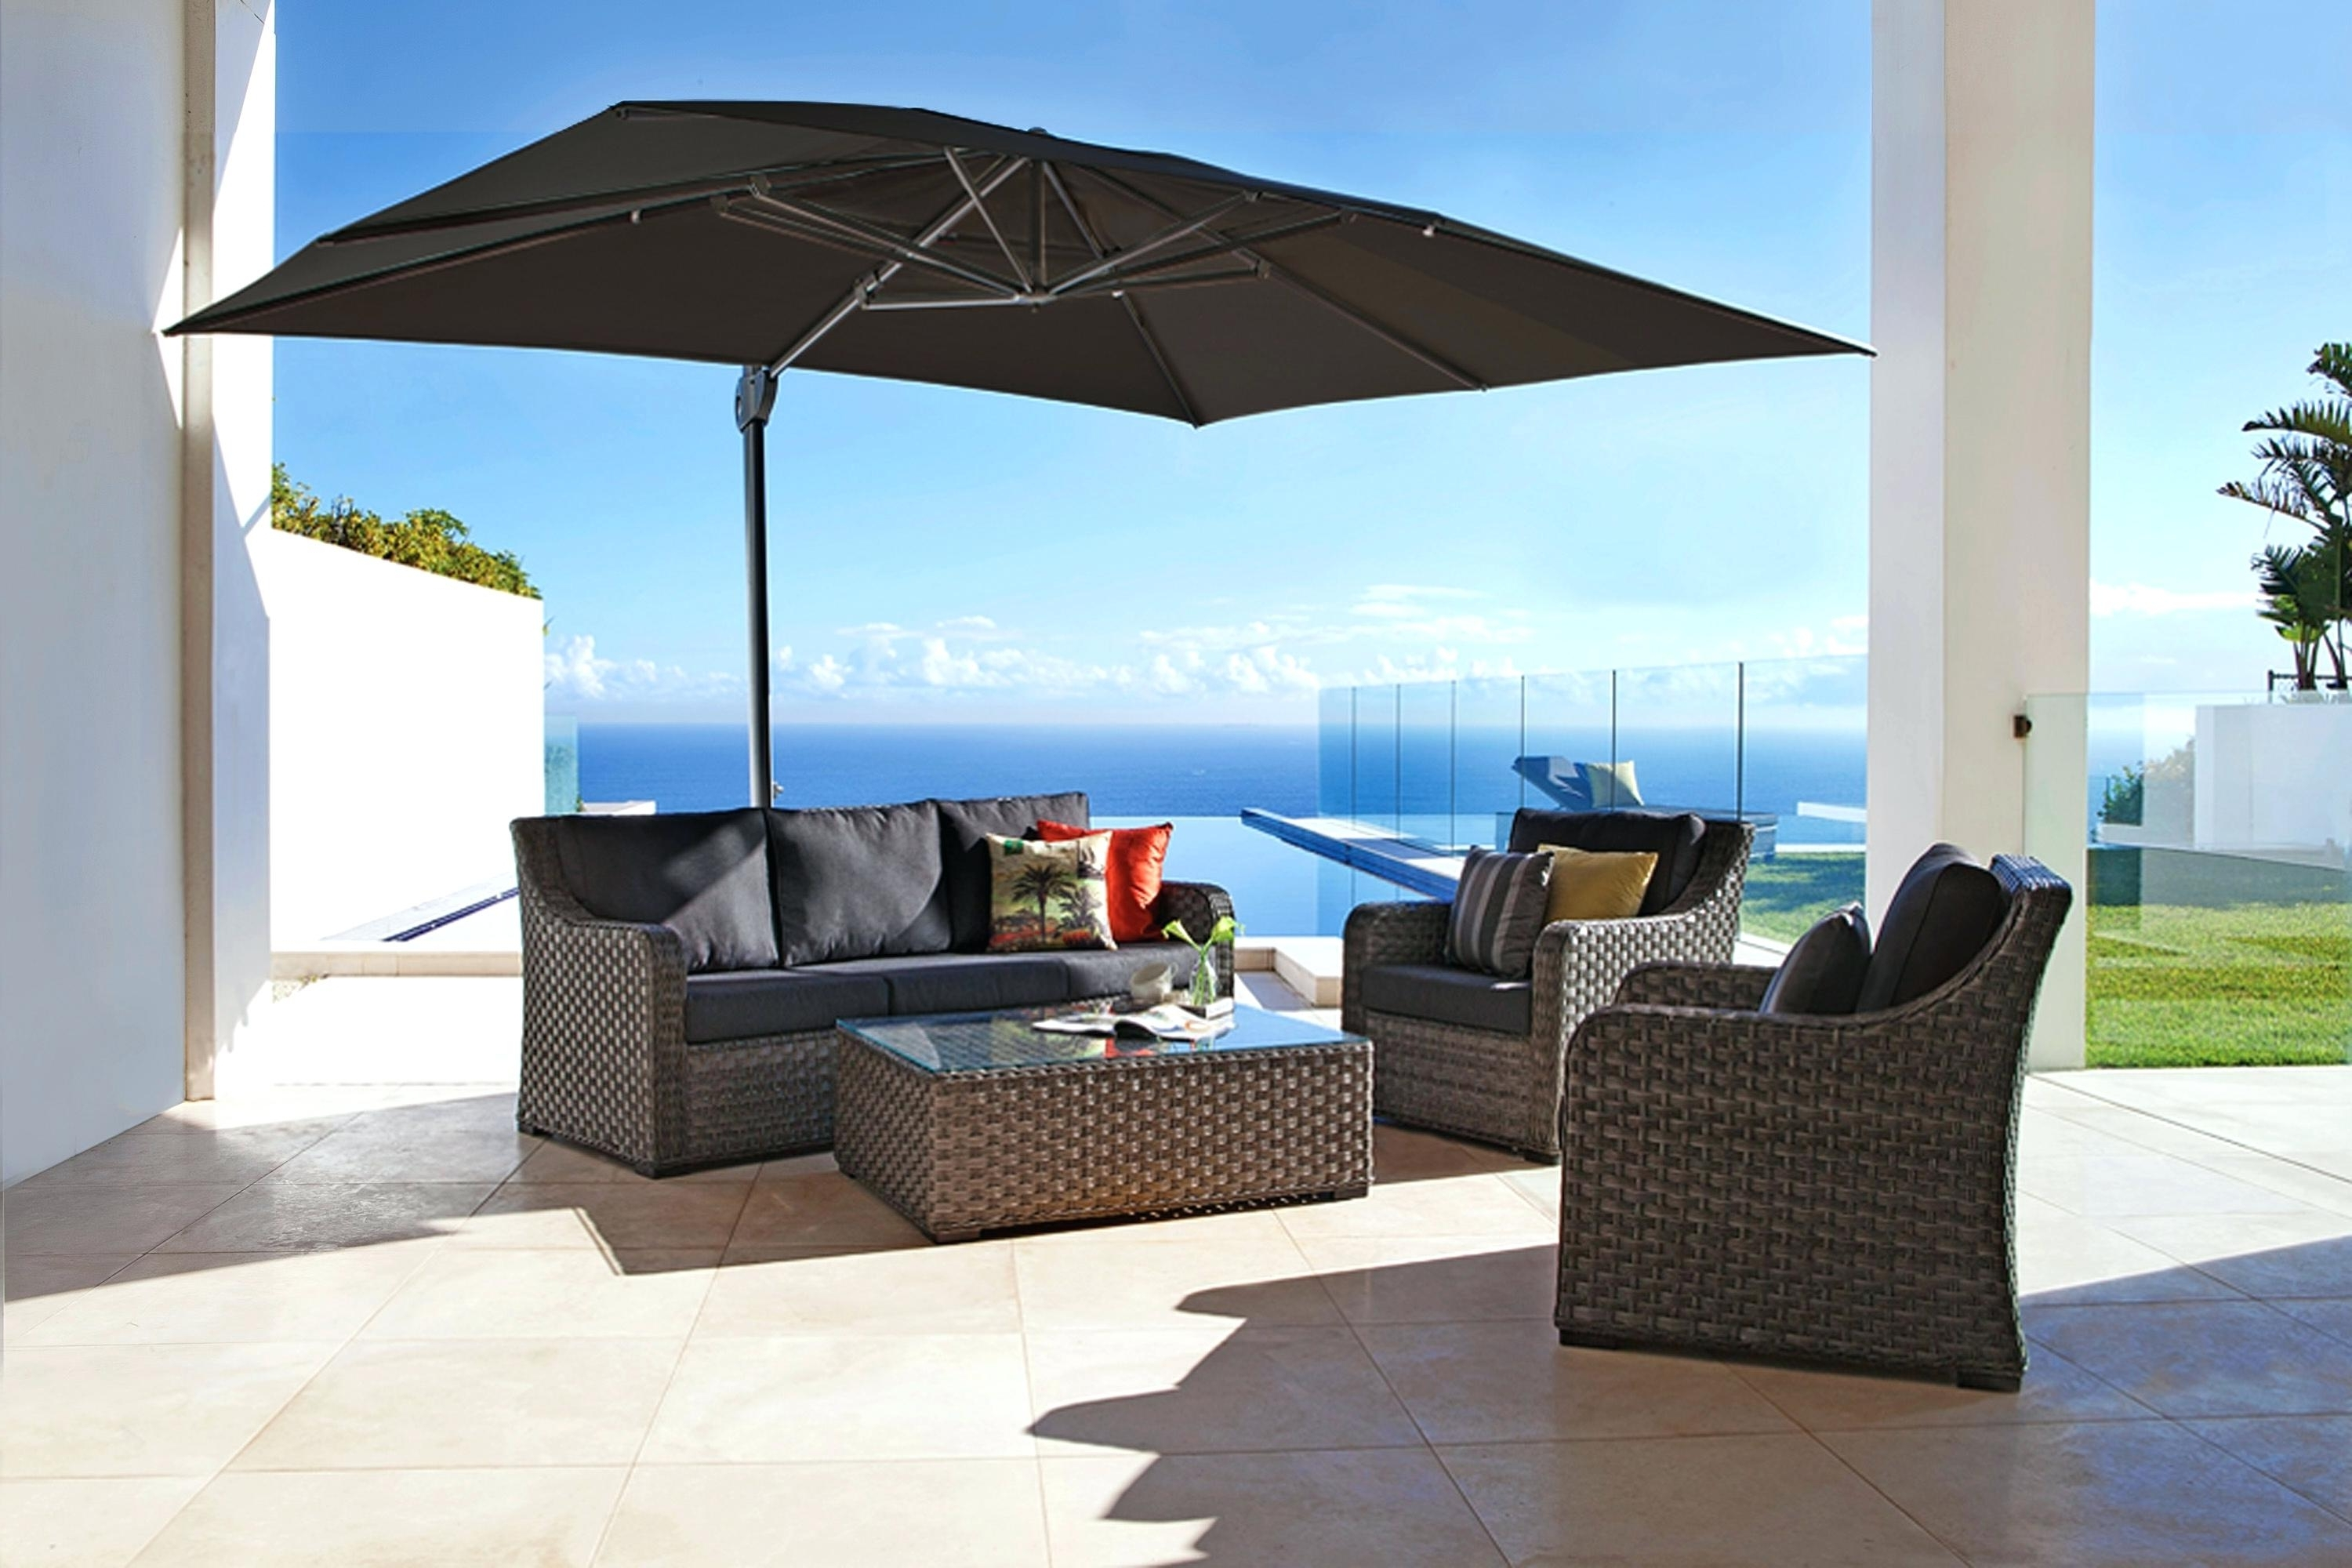 Lowes Patio Umbrella Th Inspiring Covers Canopy Canada With Well Known Patio Umbrella Covers (View 5 of 20)